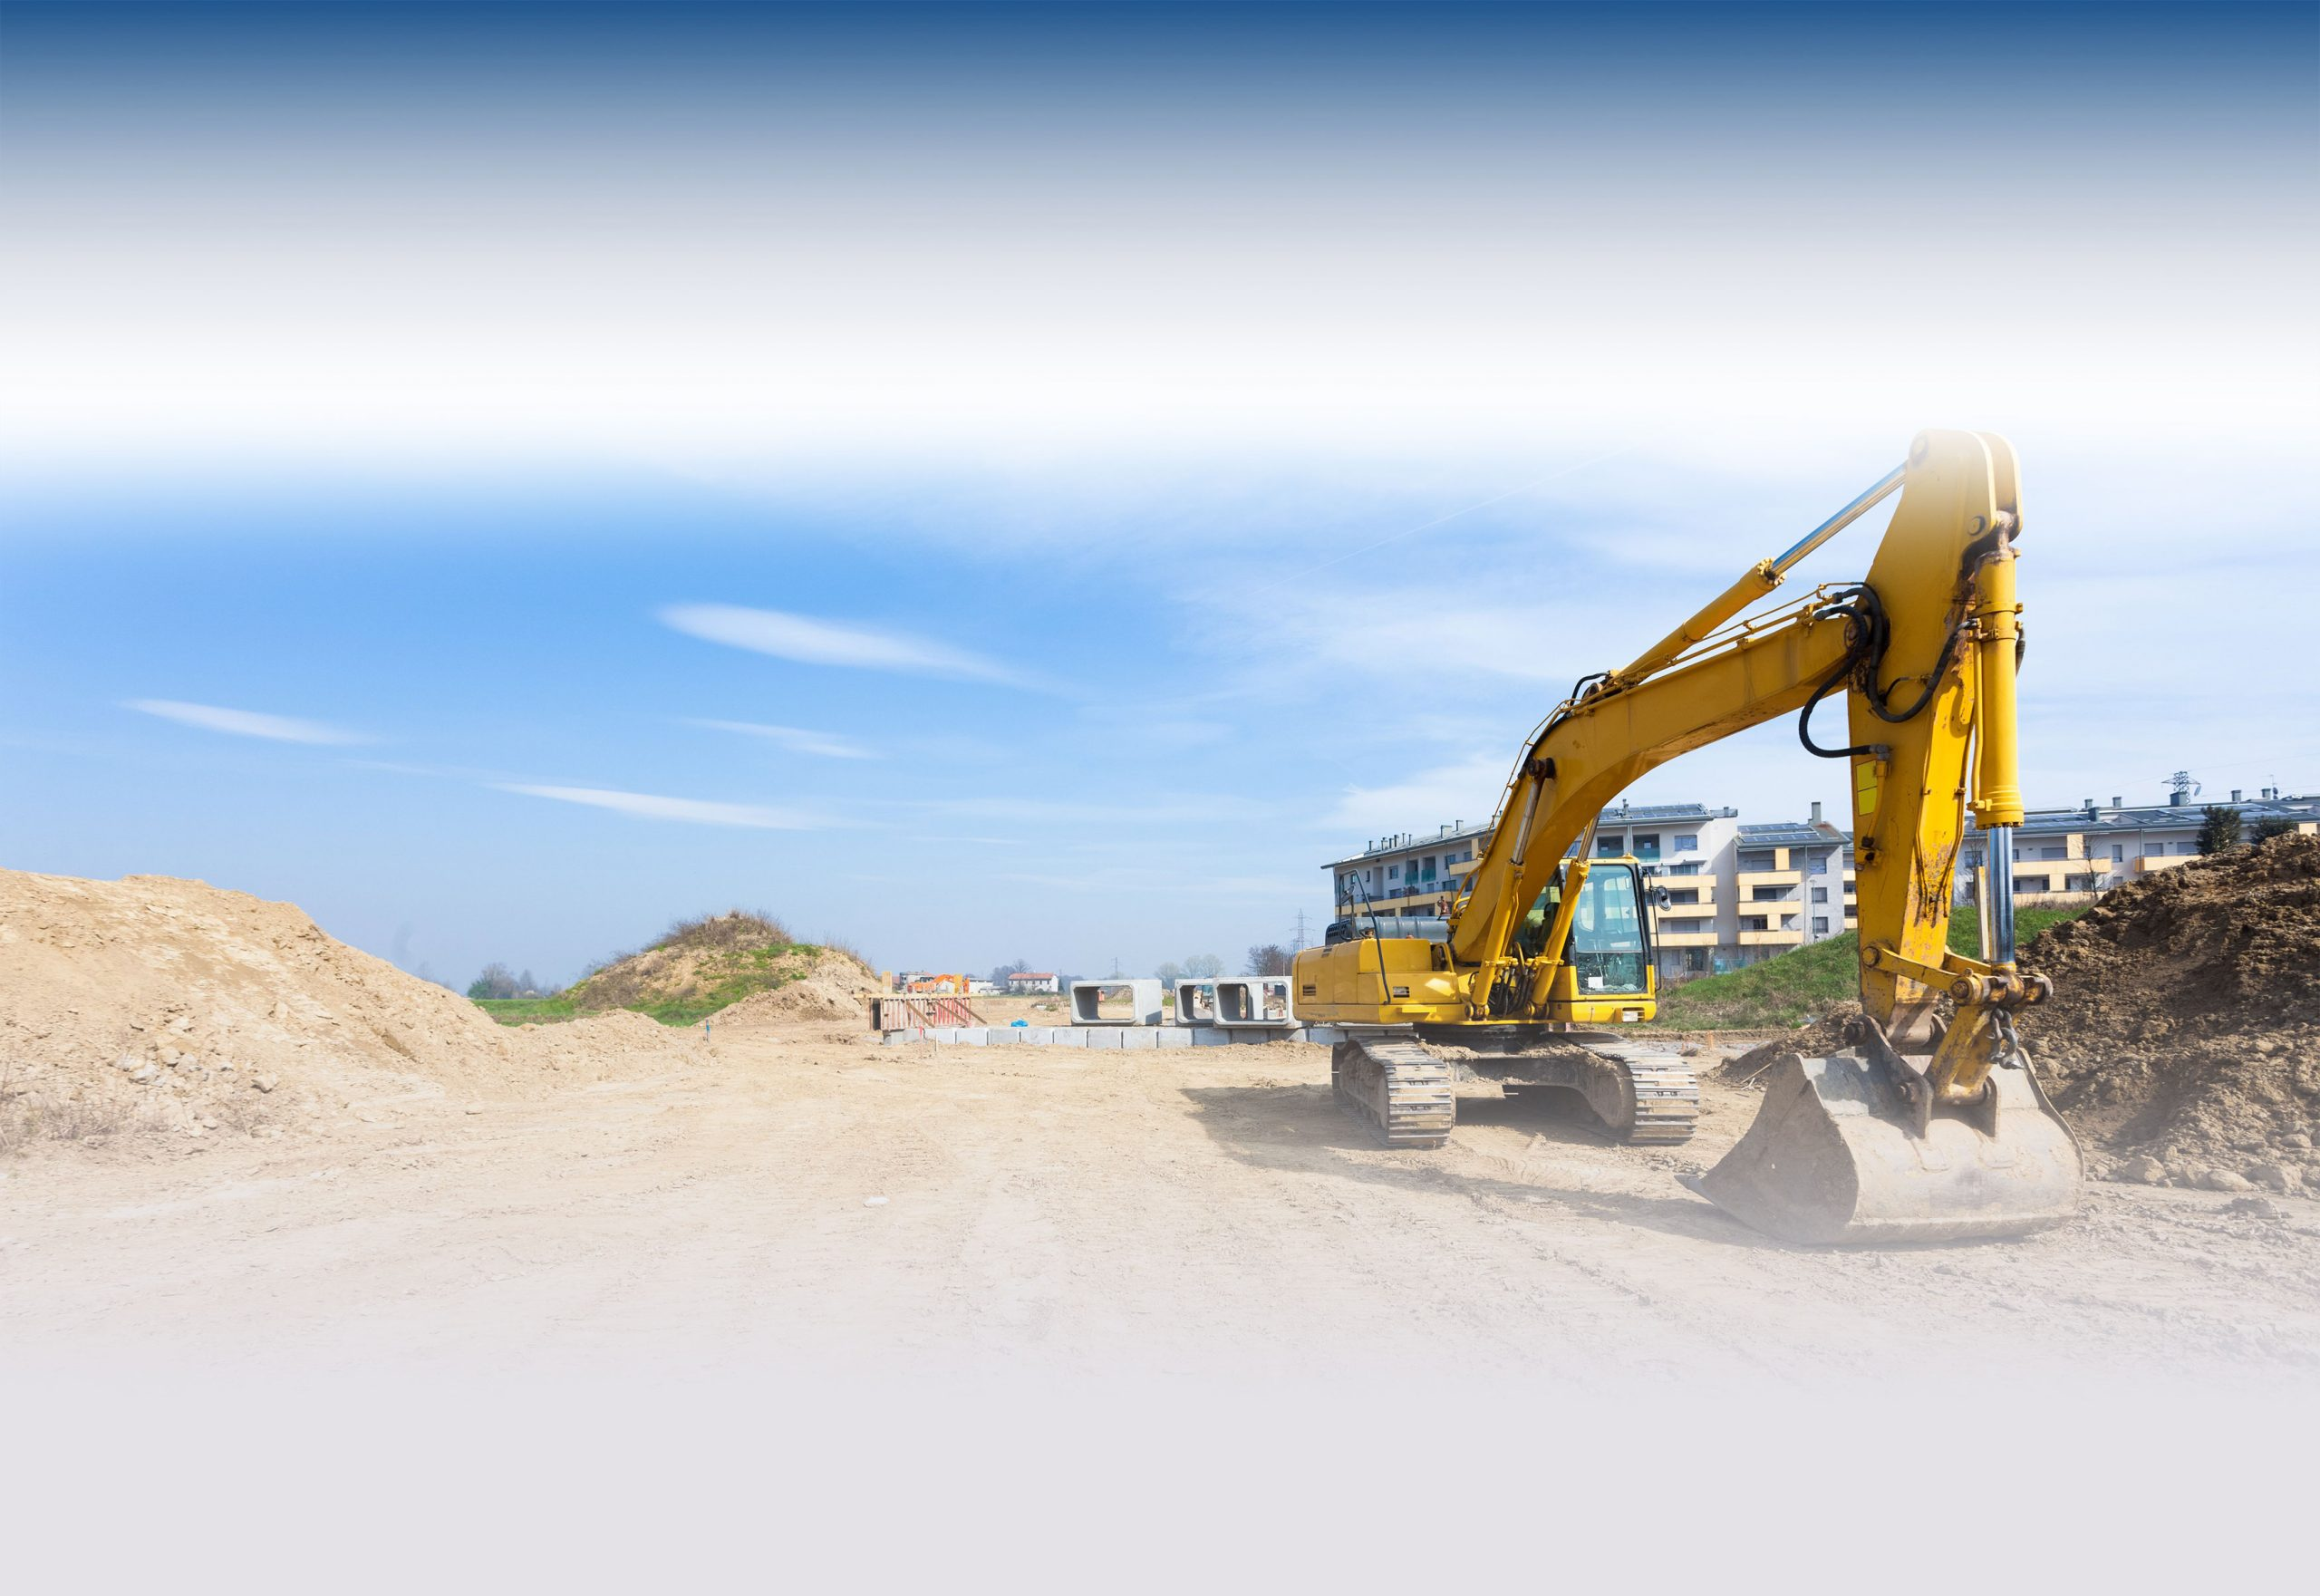 Excavator at project site